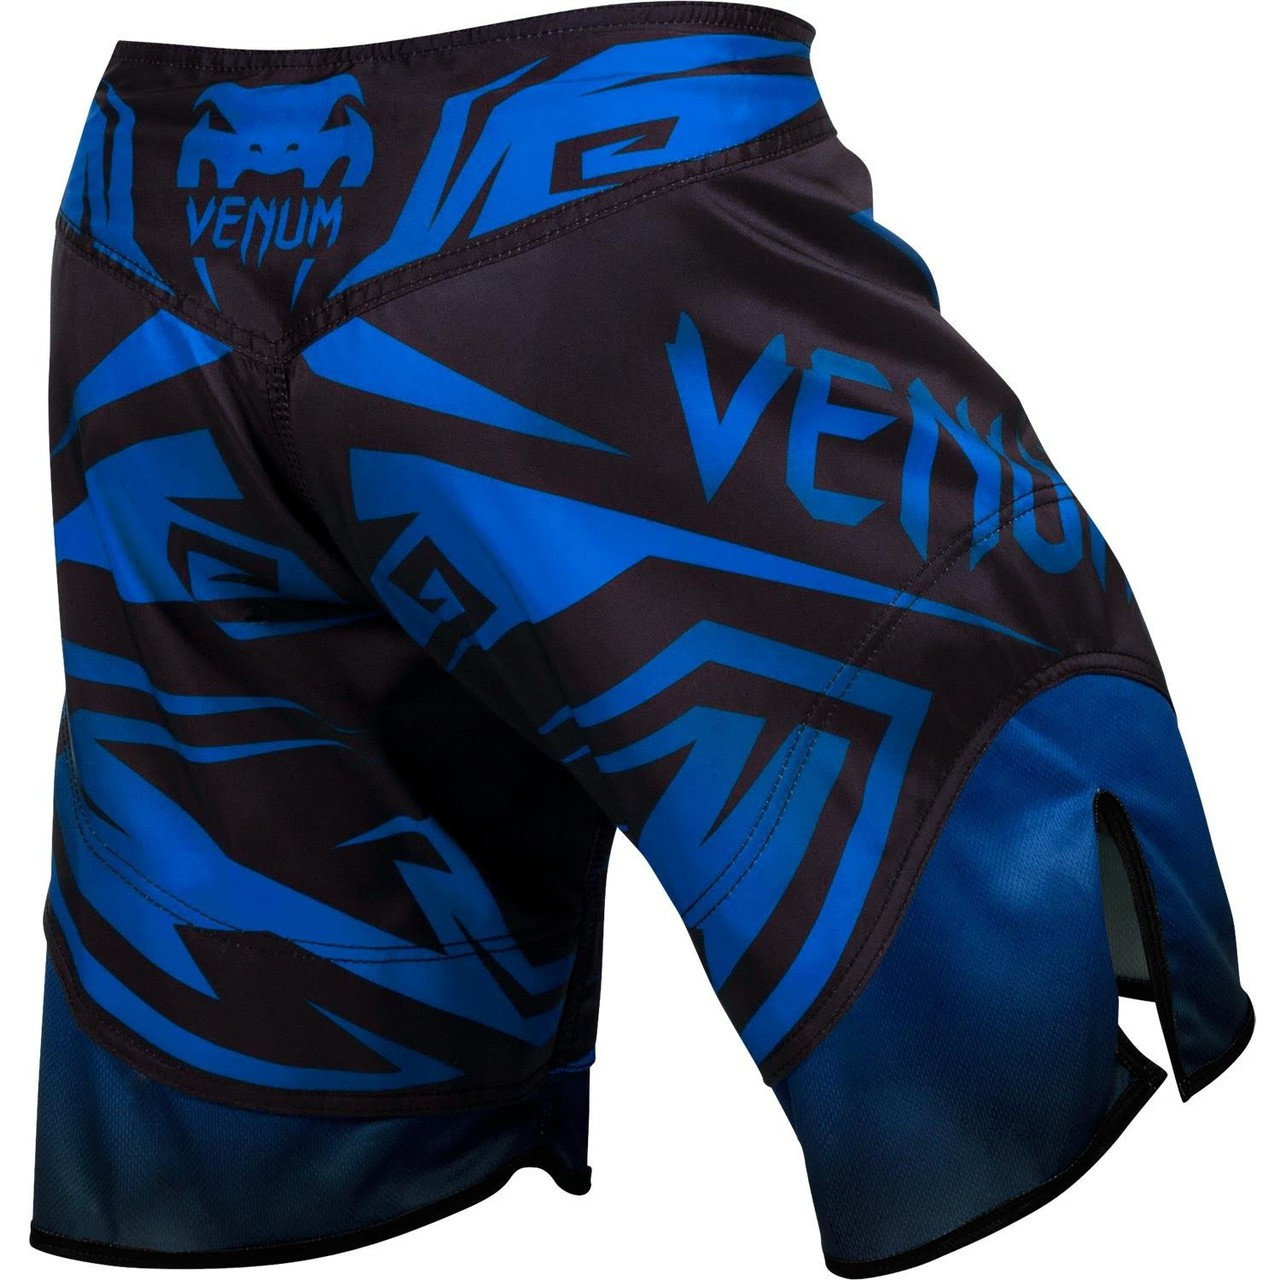 Back view of the Venum Shadow Hunter Fight Short in Blue and Black.  Available at www.thejiujitsushop.com.  Premium fight shorts shadow hunter  enjoy Free Shipping from The Jiu Jitsu Shop